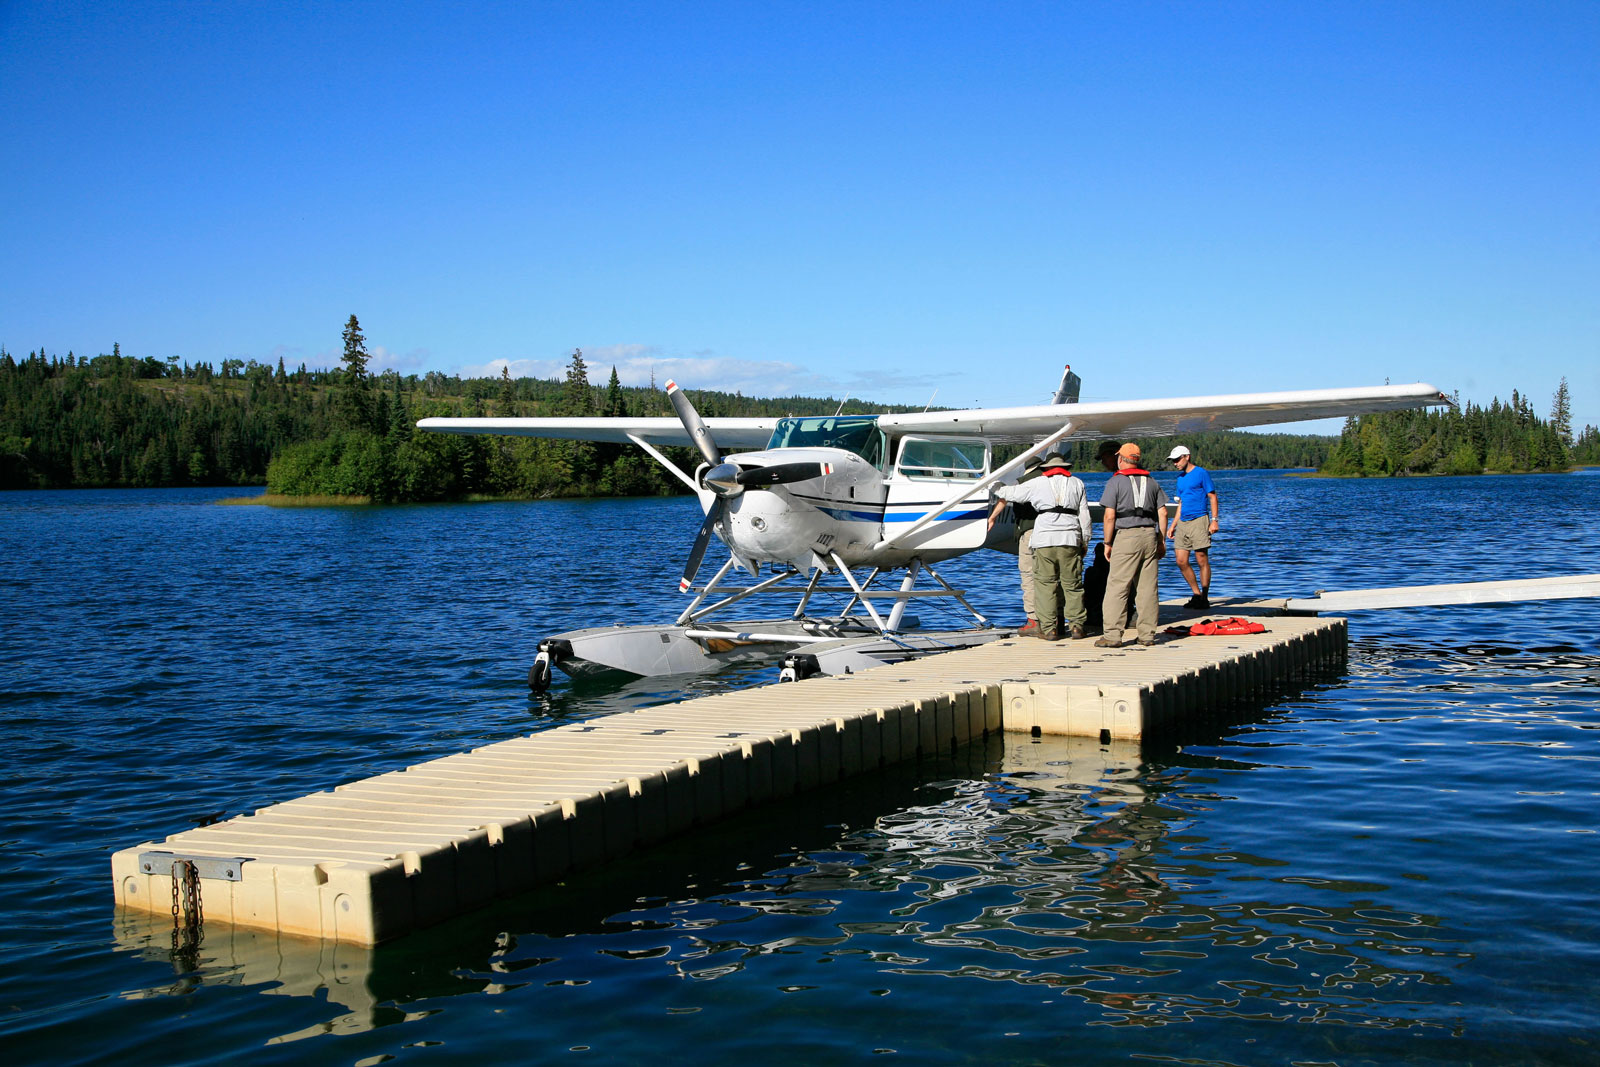 An Isle Royale Seaplanes Cessna 206 docks at Tobin Harbor, near Rock Harbor. Isle Royale is one of the few national parks you can access directly via seaplane. Photo courtesy Isle Royale Seaplanes.